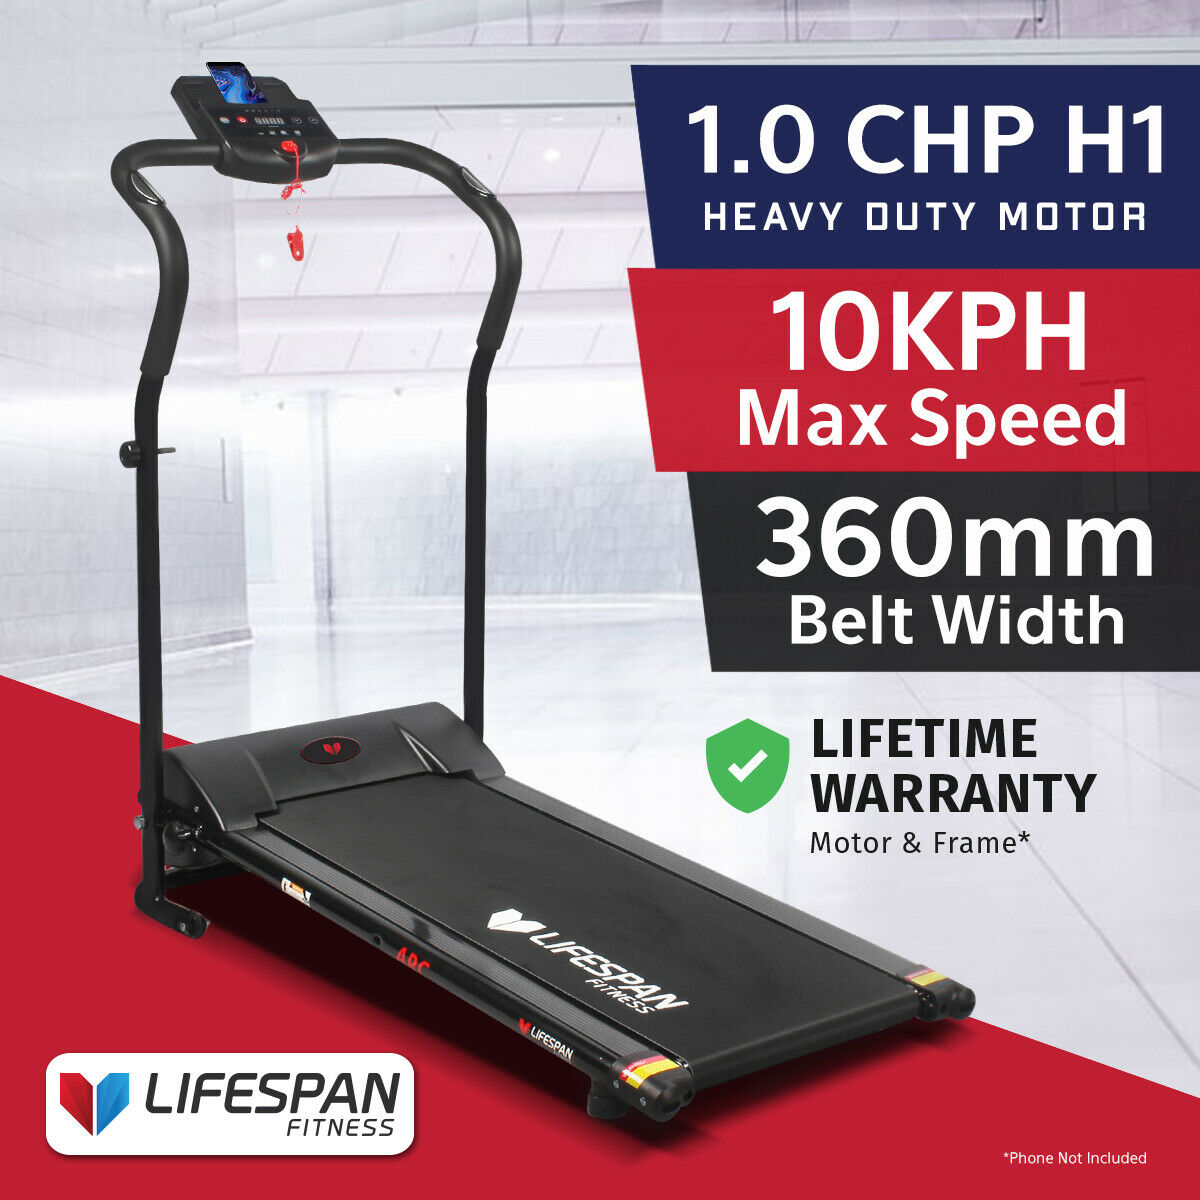 Easy Home Exercise Equipment: LIFESPAN FITNESS ARC Compact Treadmill Exercise Easy